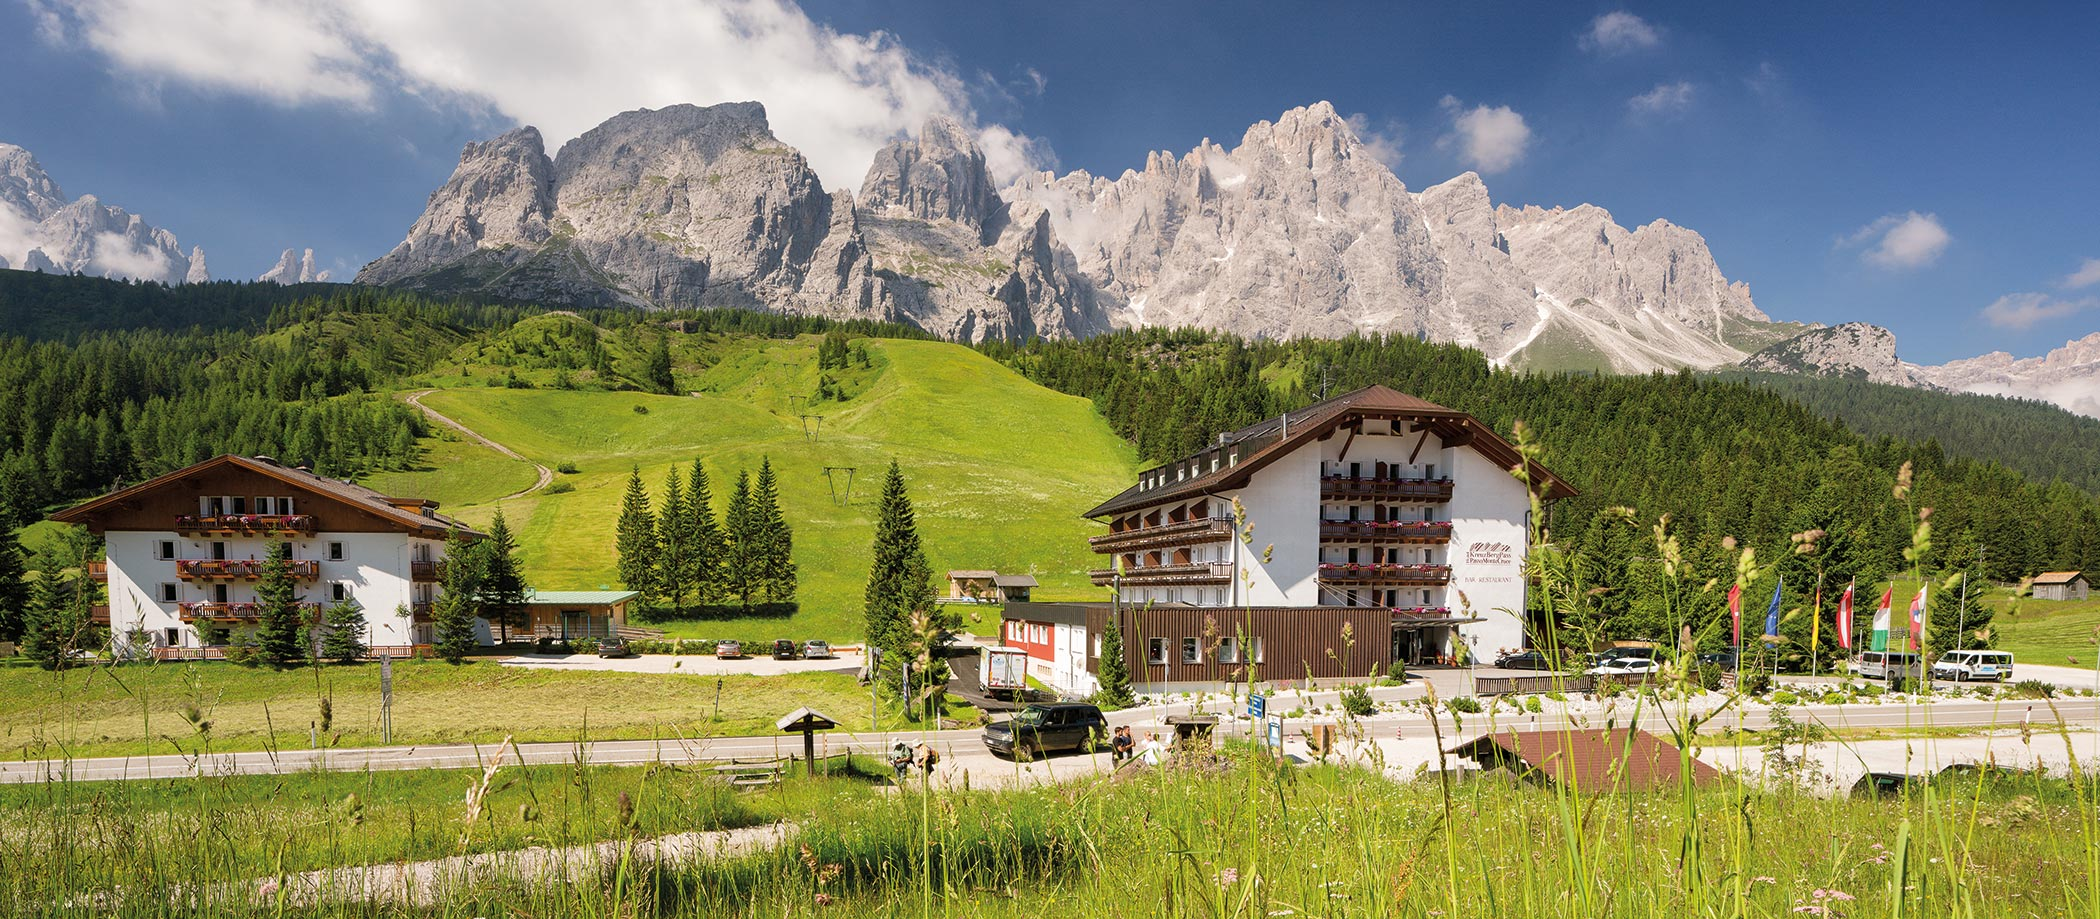 Location and getting to Sesto in the Dolomites